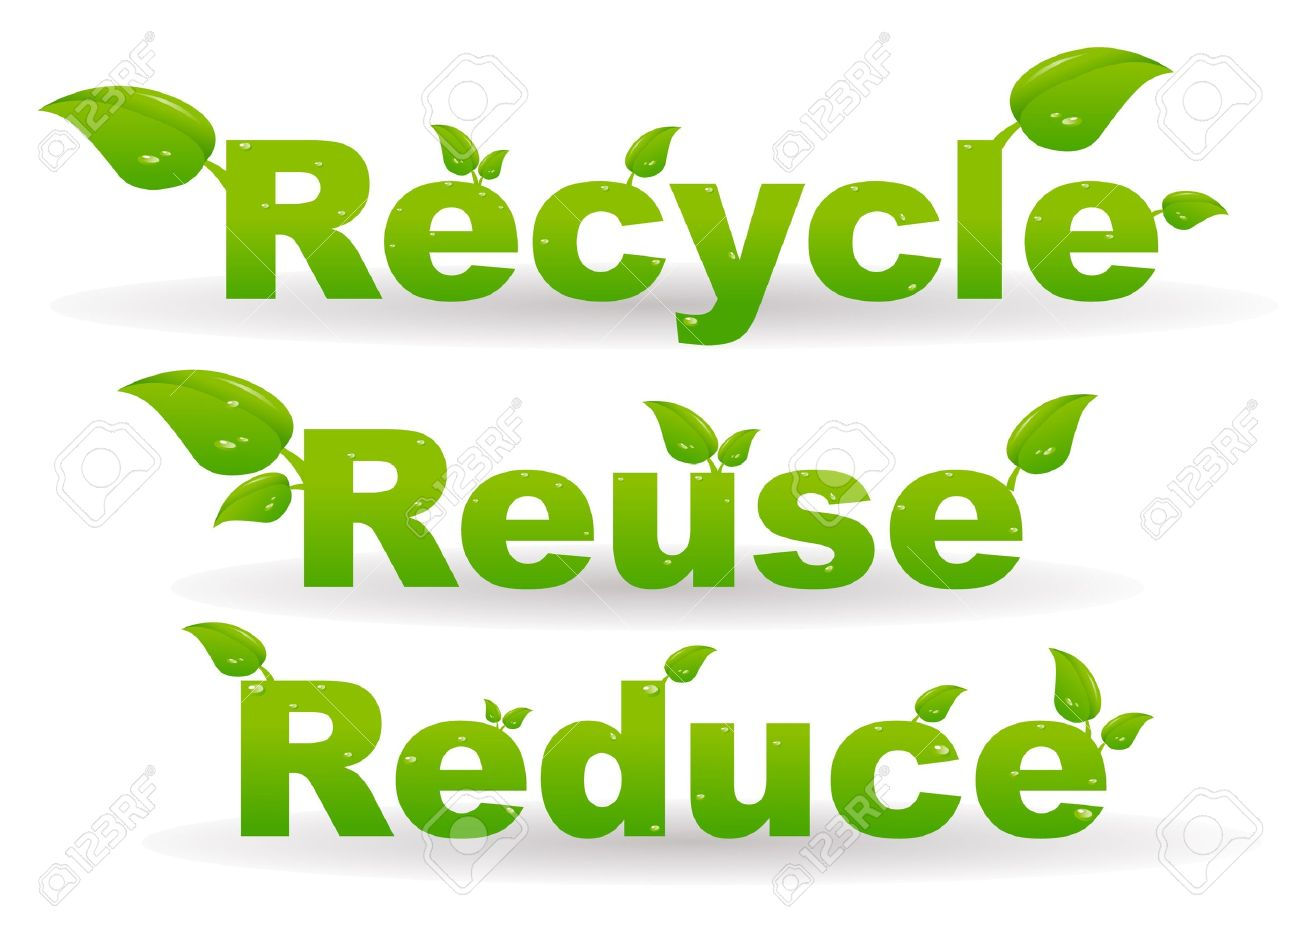 11 391 reduce reuse recycle cliparts stock vector and royalty